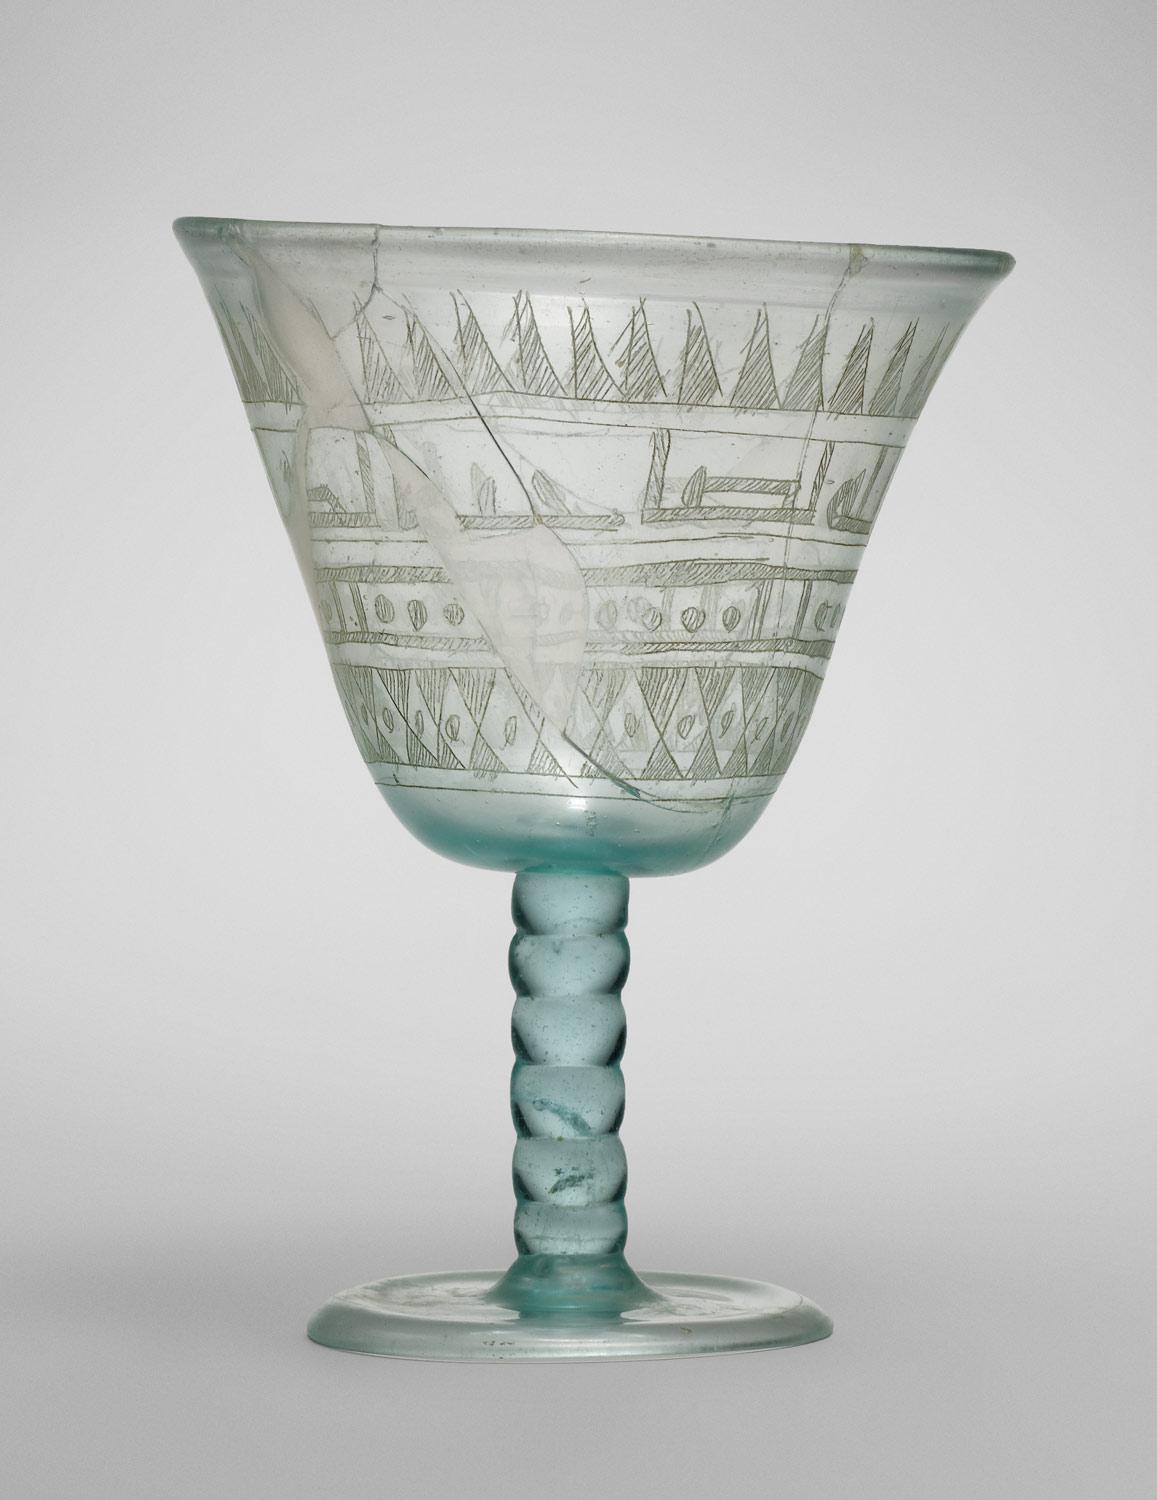 Goblet with Incised Designs, ,Glass